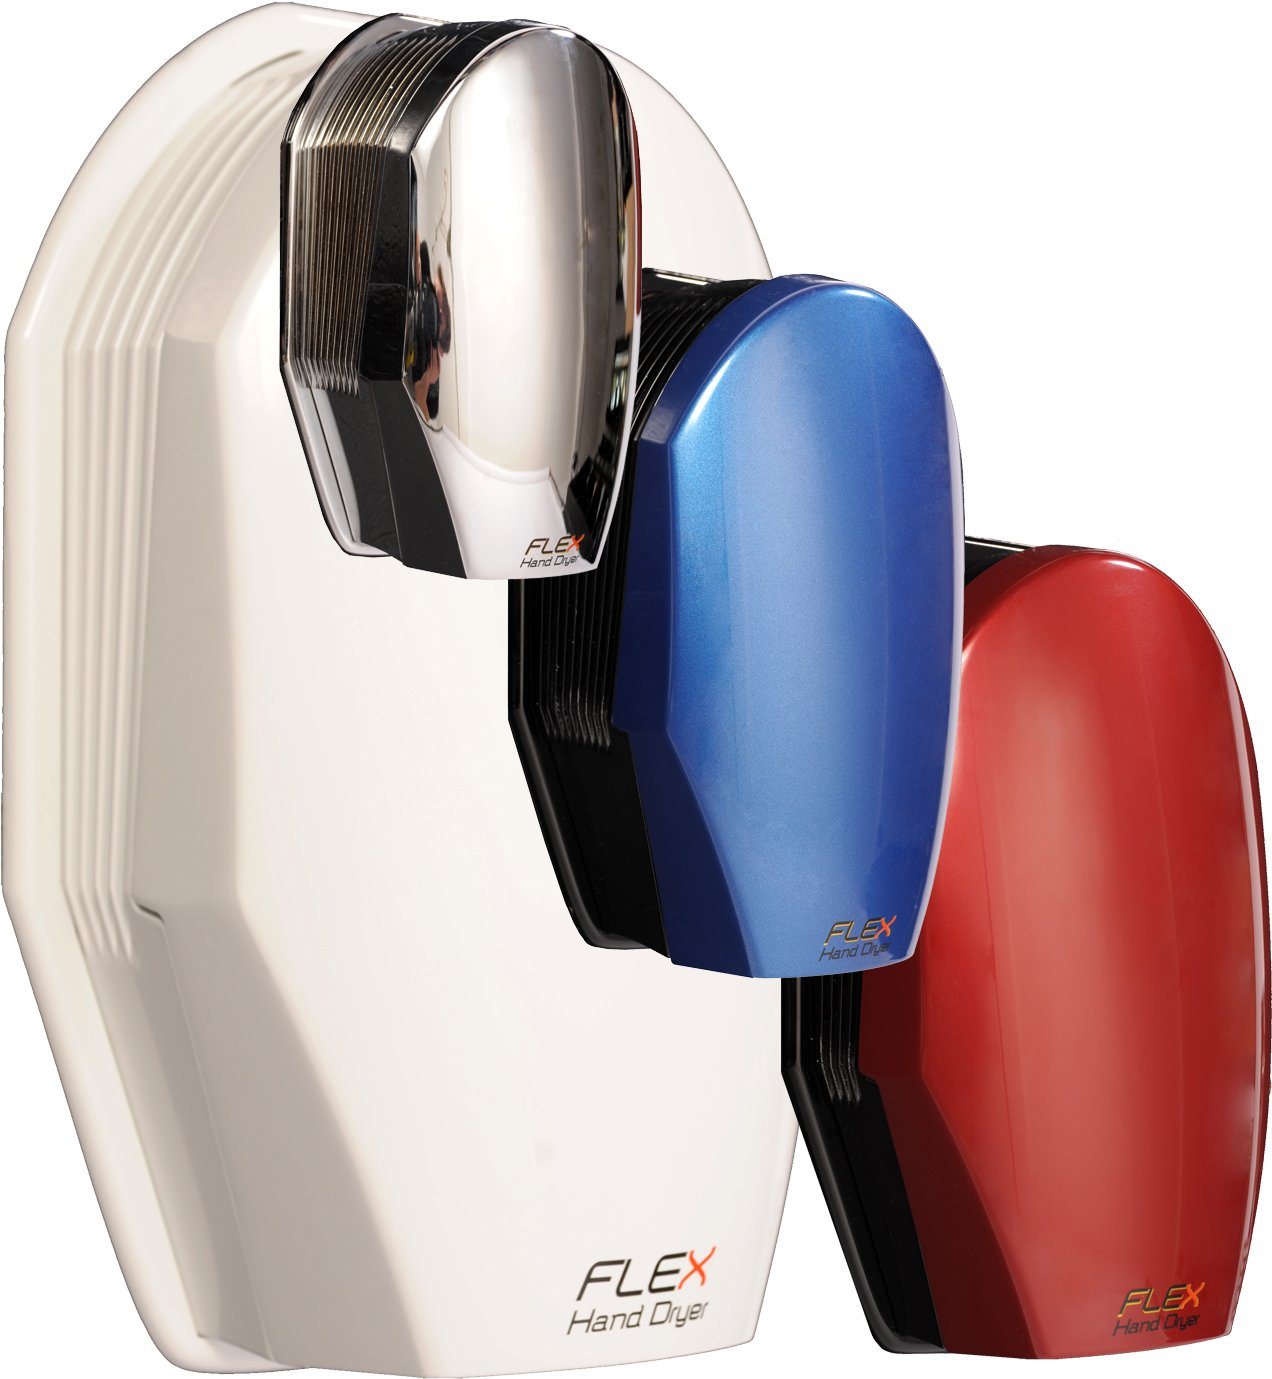 Made in Canada Heavy Duty Enclosure 10 Year Warranty Consumes only 800W Flex Hand Dryer Dries Hands in Less Than 10s Modular Design facilitates Maintenance and Upgrades Colors are availble